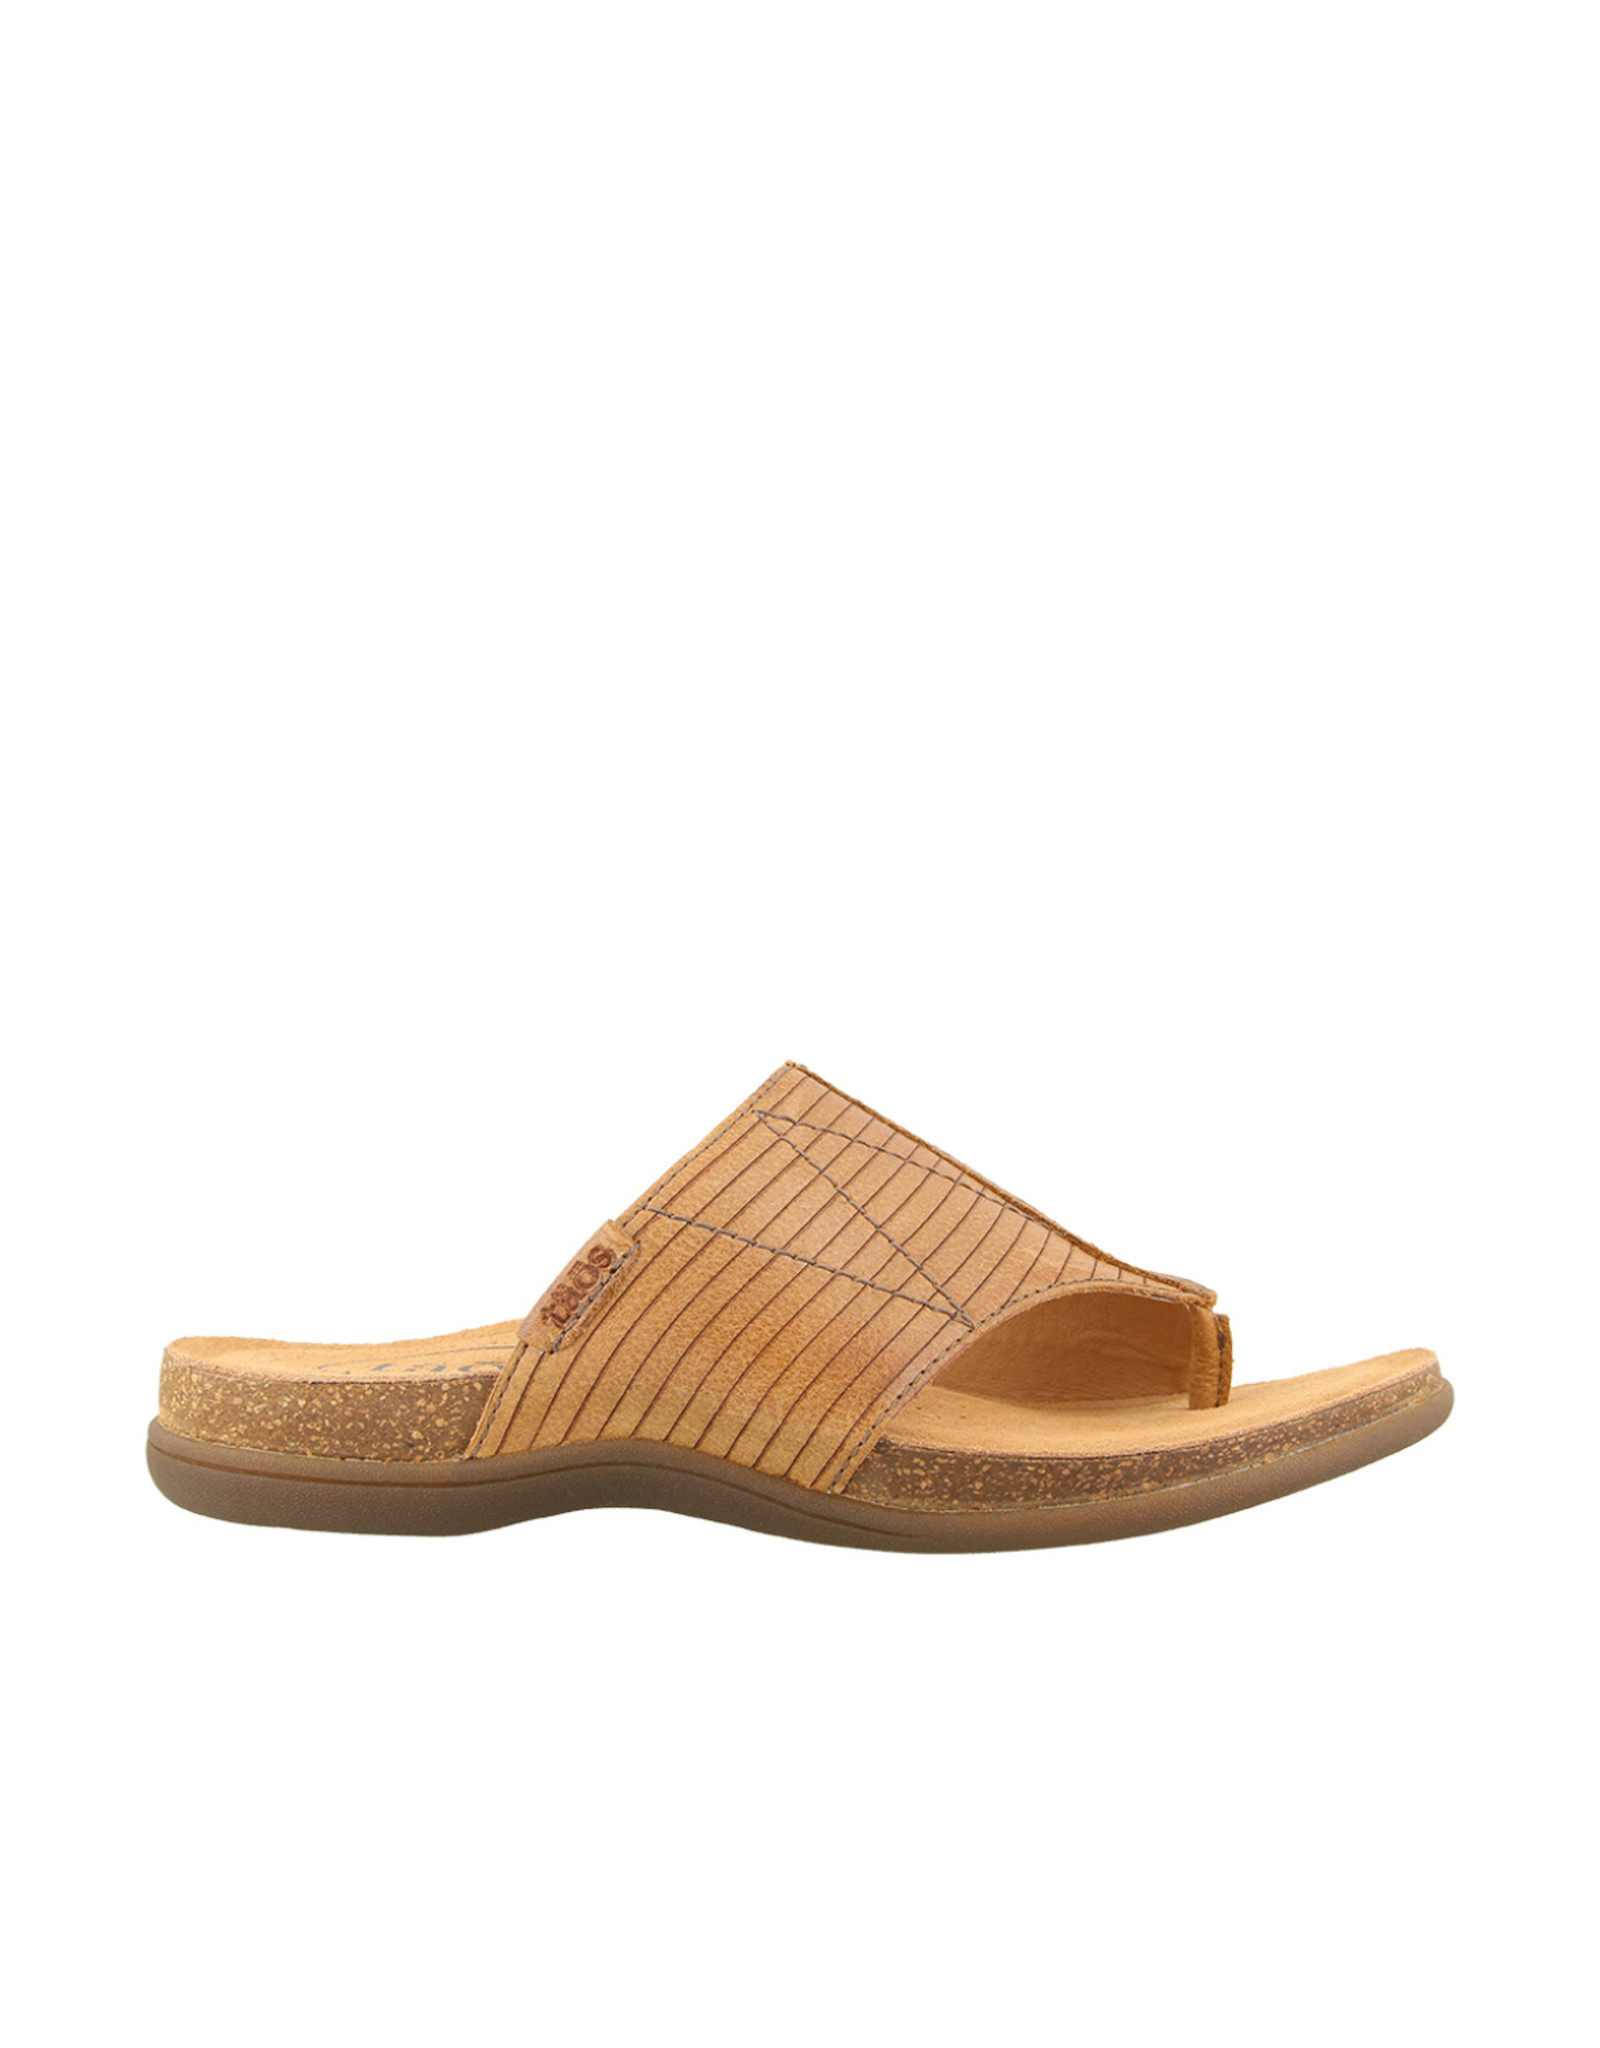 Taos Footwear Taos Rumor Supportive Slide Sandal